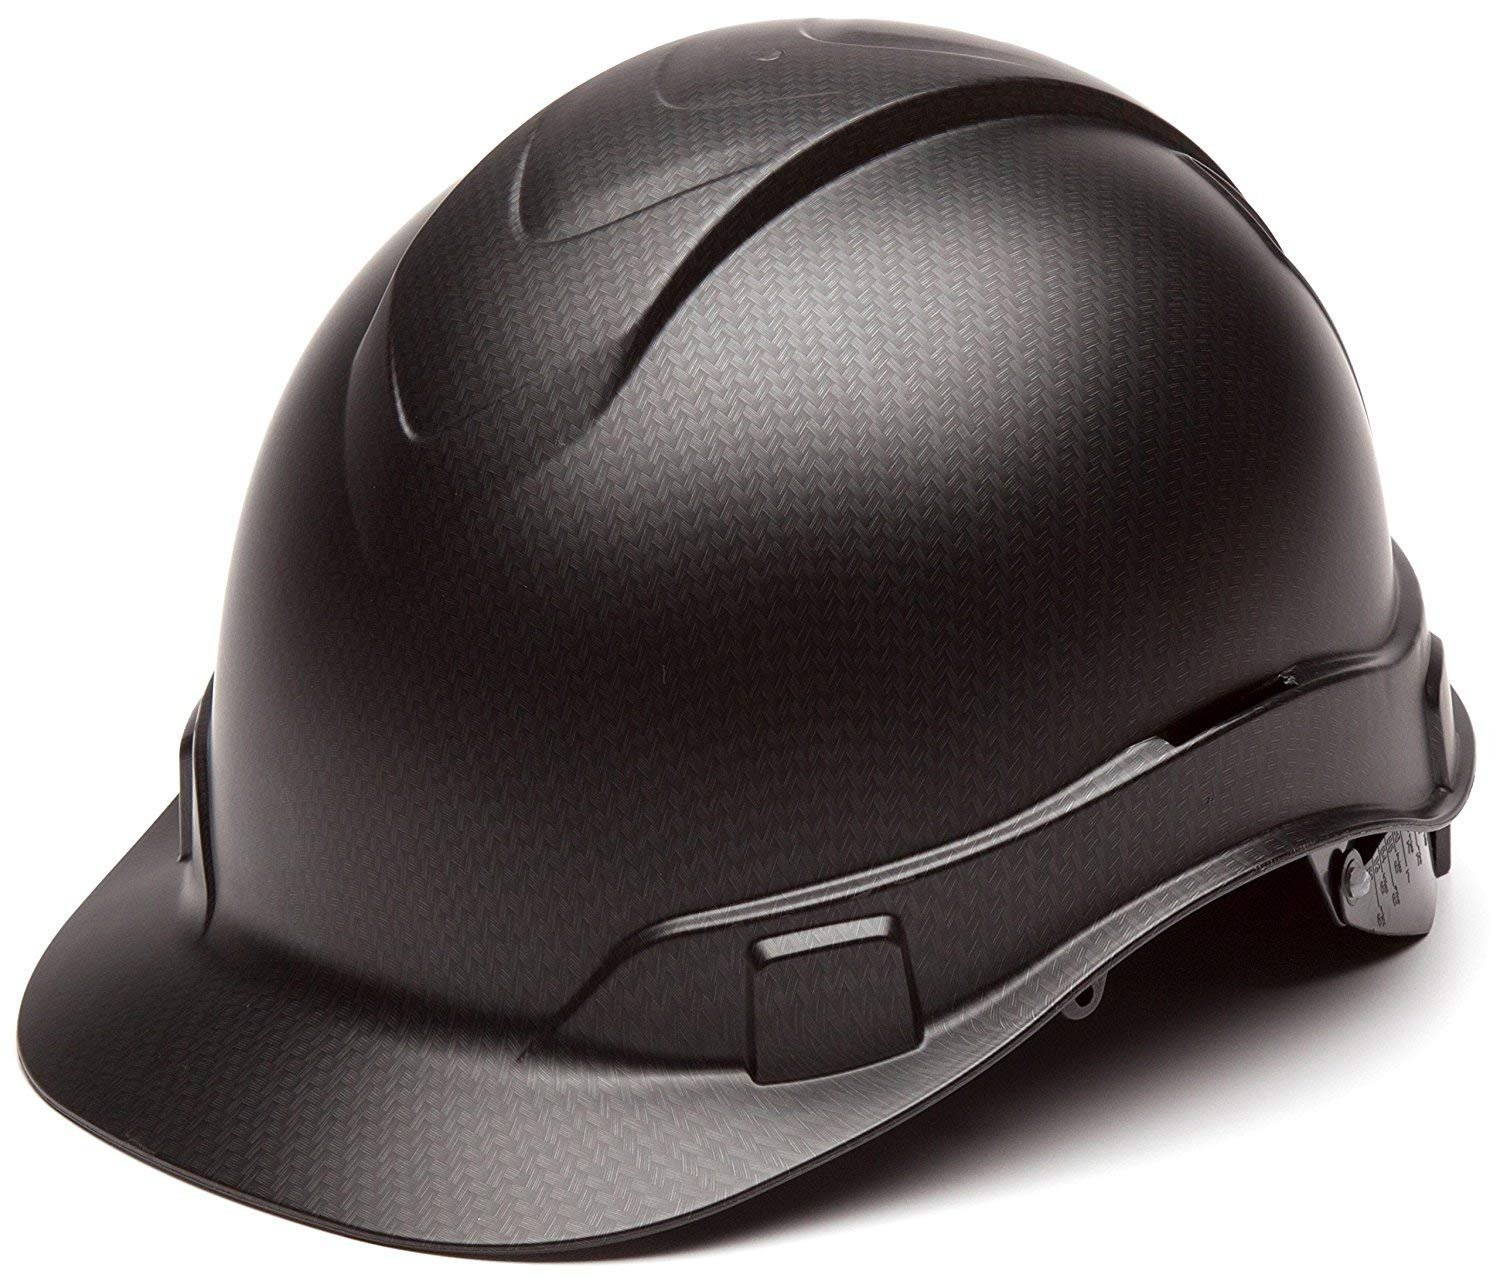 Cap Style Hard Hat, Adjustable Ratchet 4 Pt Suspension, Durable Protection safety helmet, Black Matte Graphite Pattern Design, by Tuff America